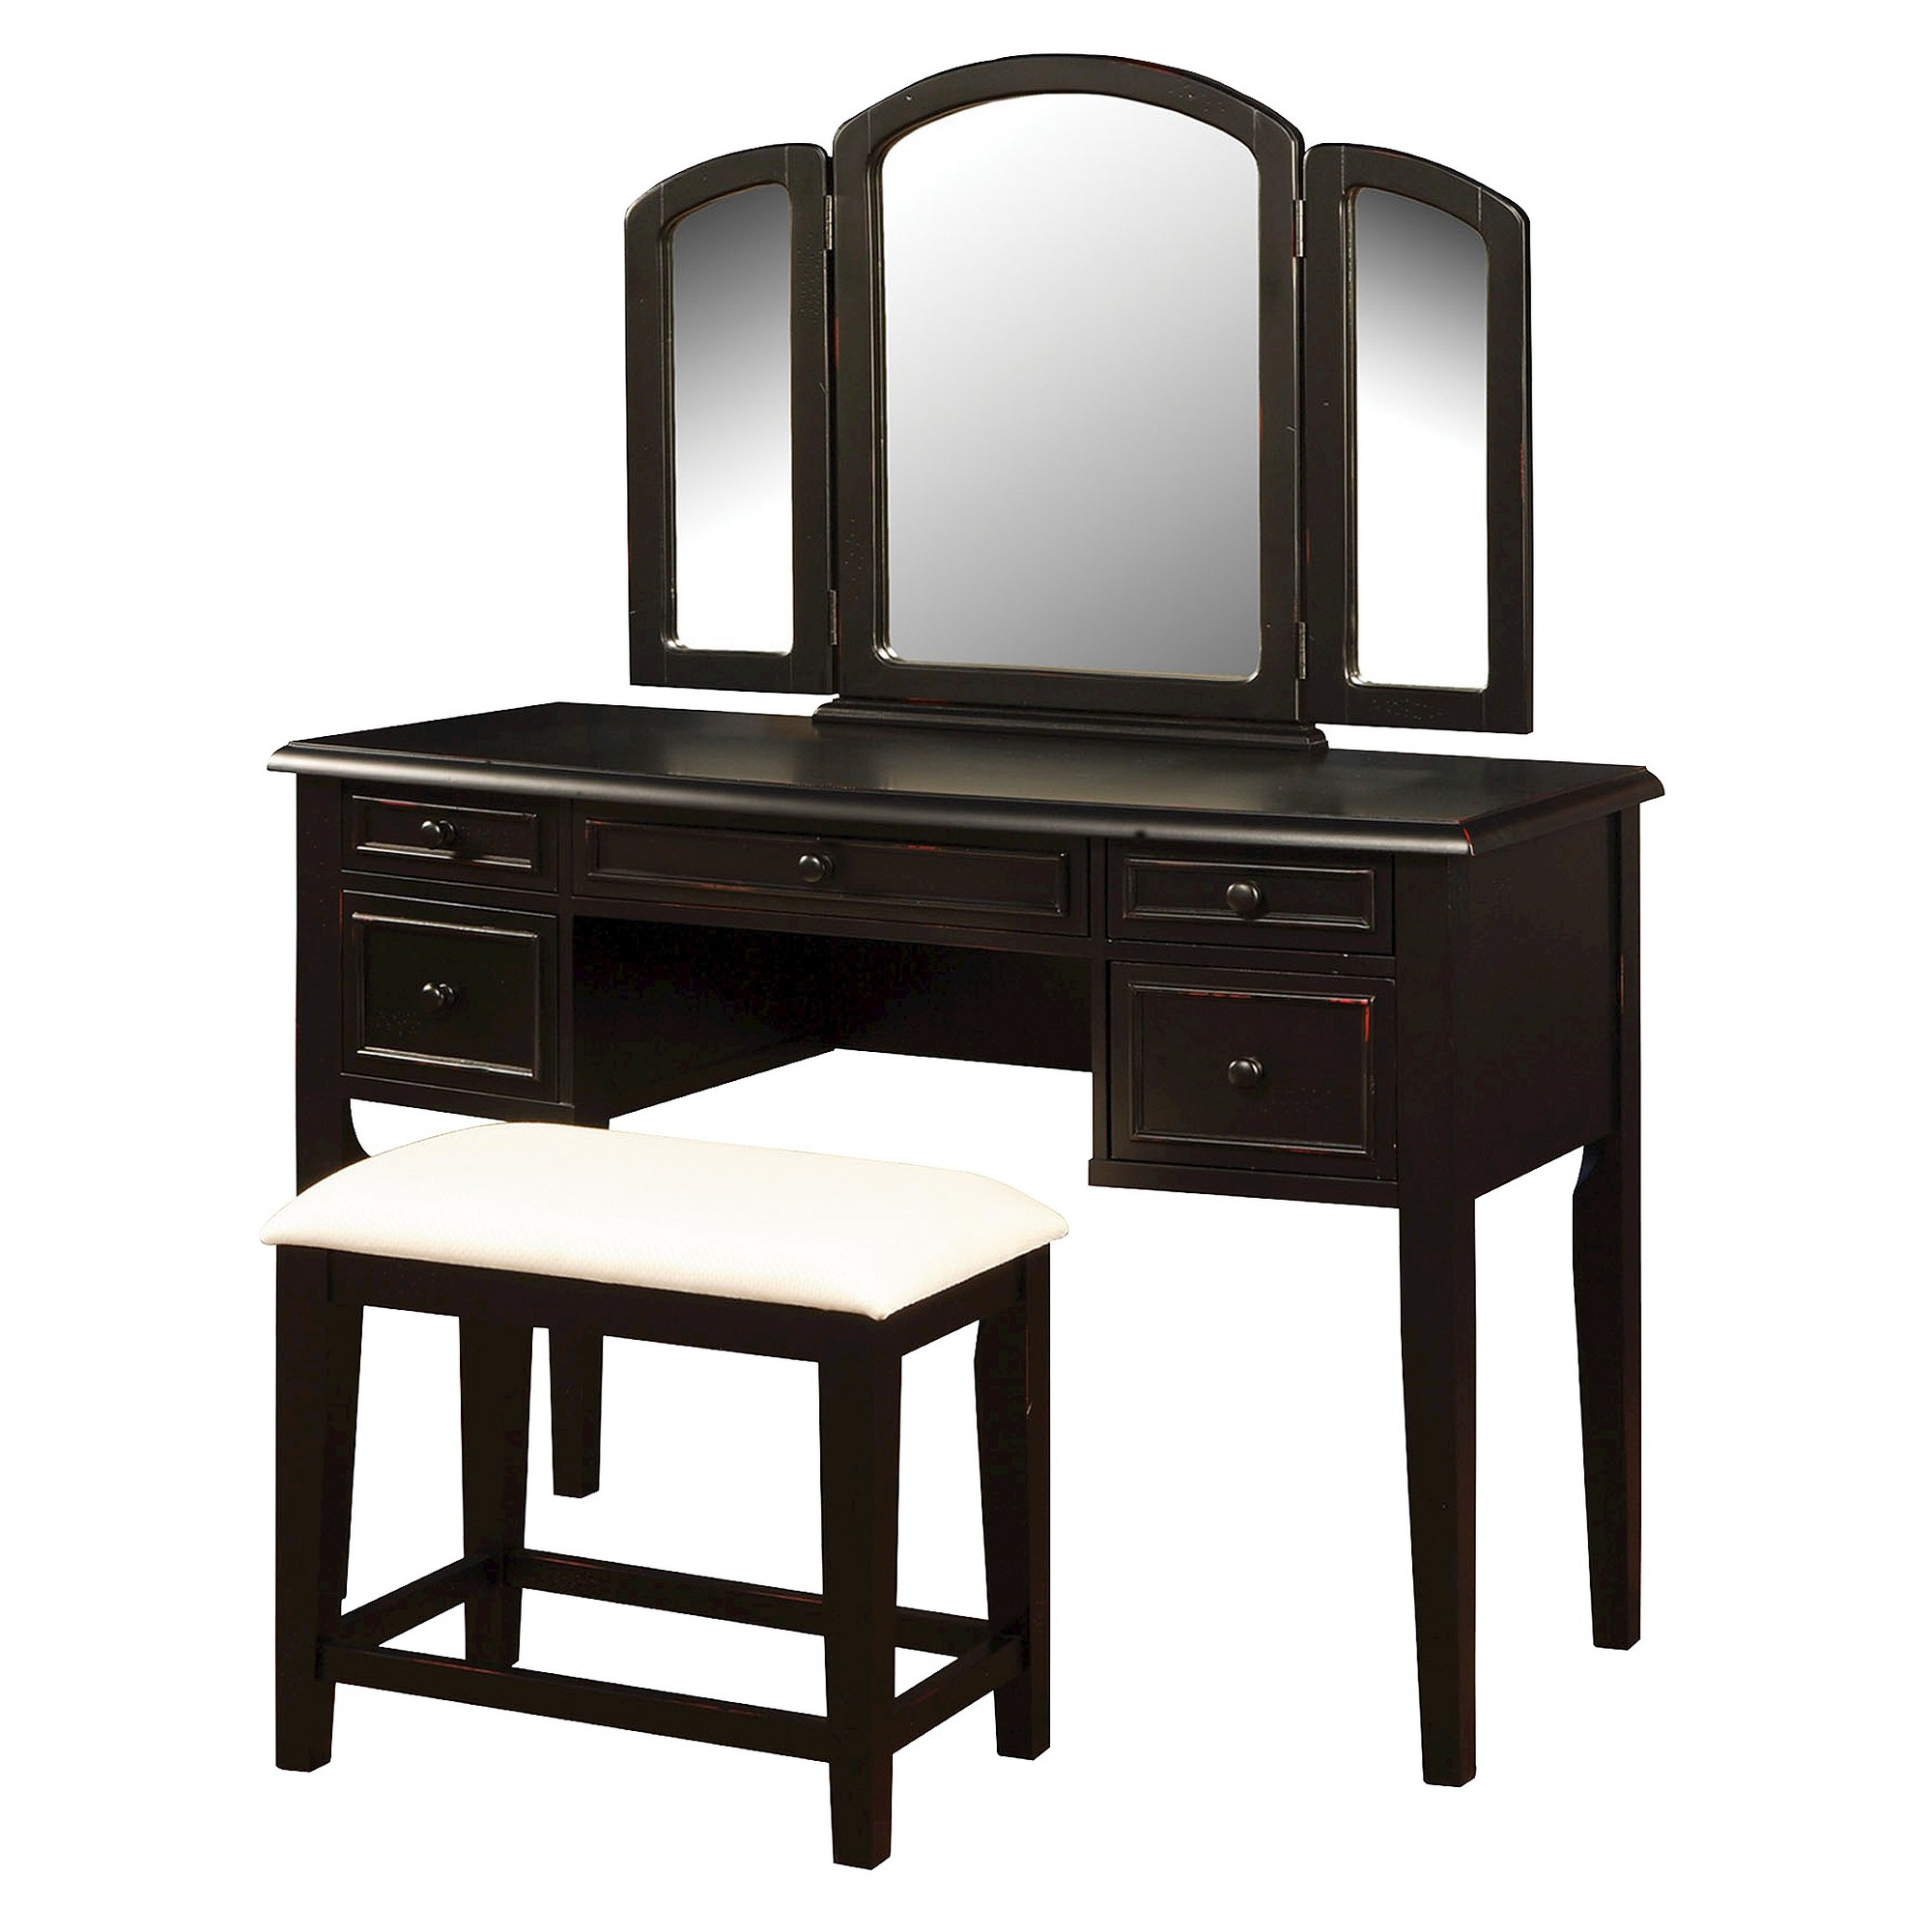 Excellent Simone Vanity Mirror Bench Antique Black Powell Company Gmtry Best Dining Table And Chair Ideas Images Gmtryco